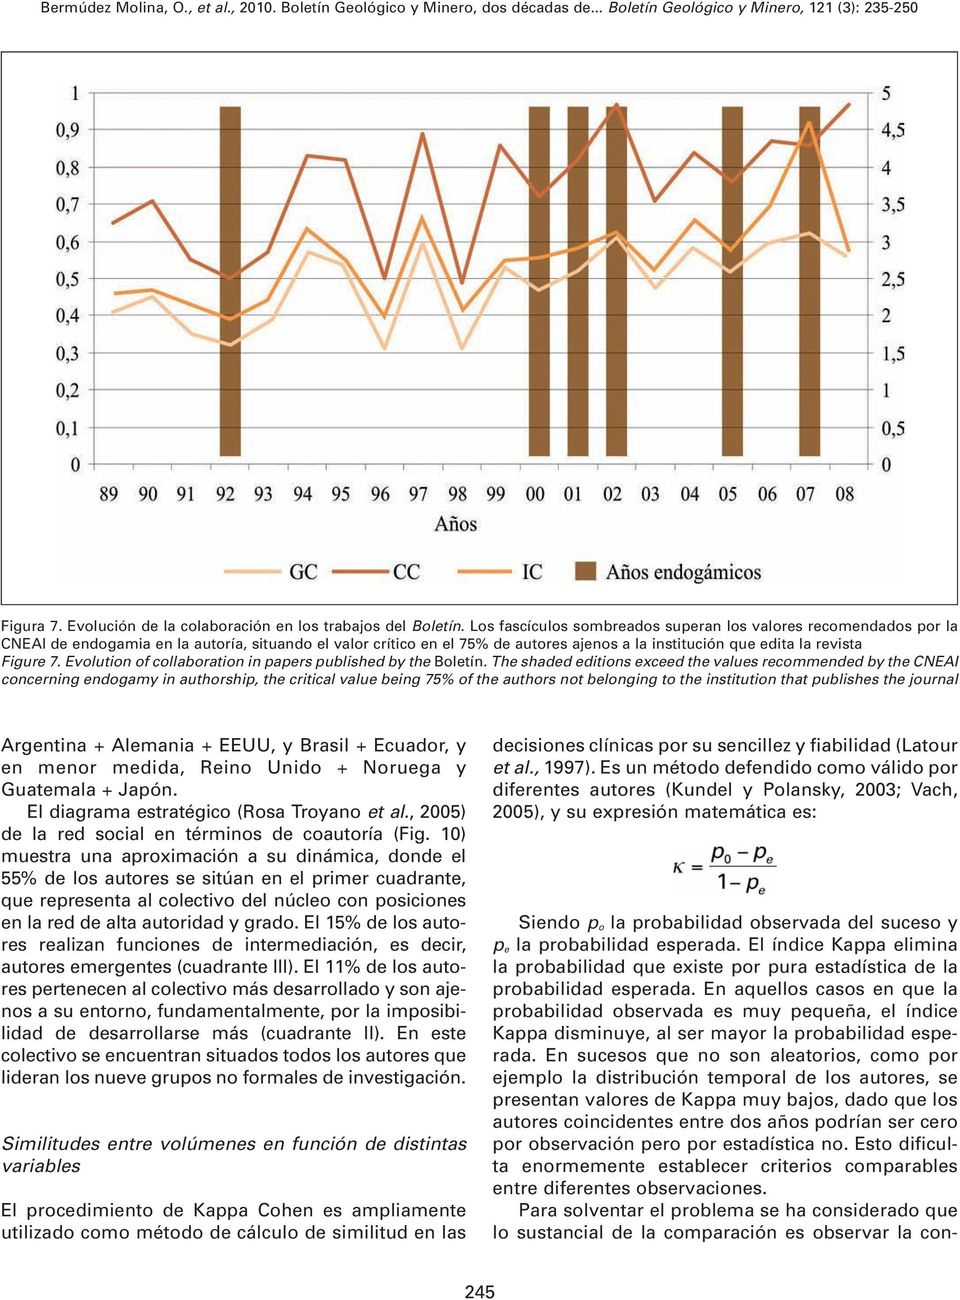 7. Evolution of collaboration in papers published by the Boletín.